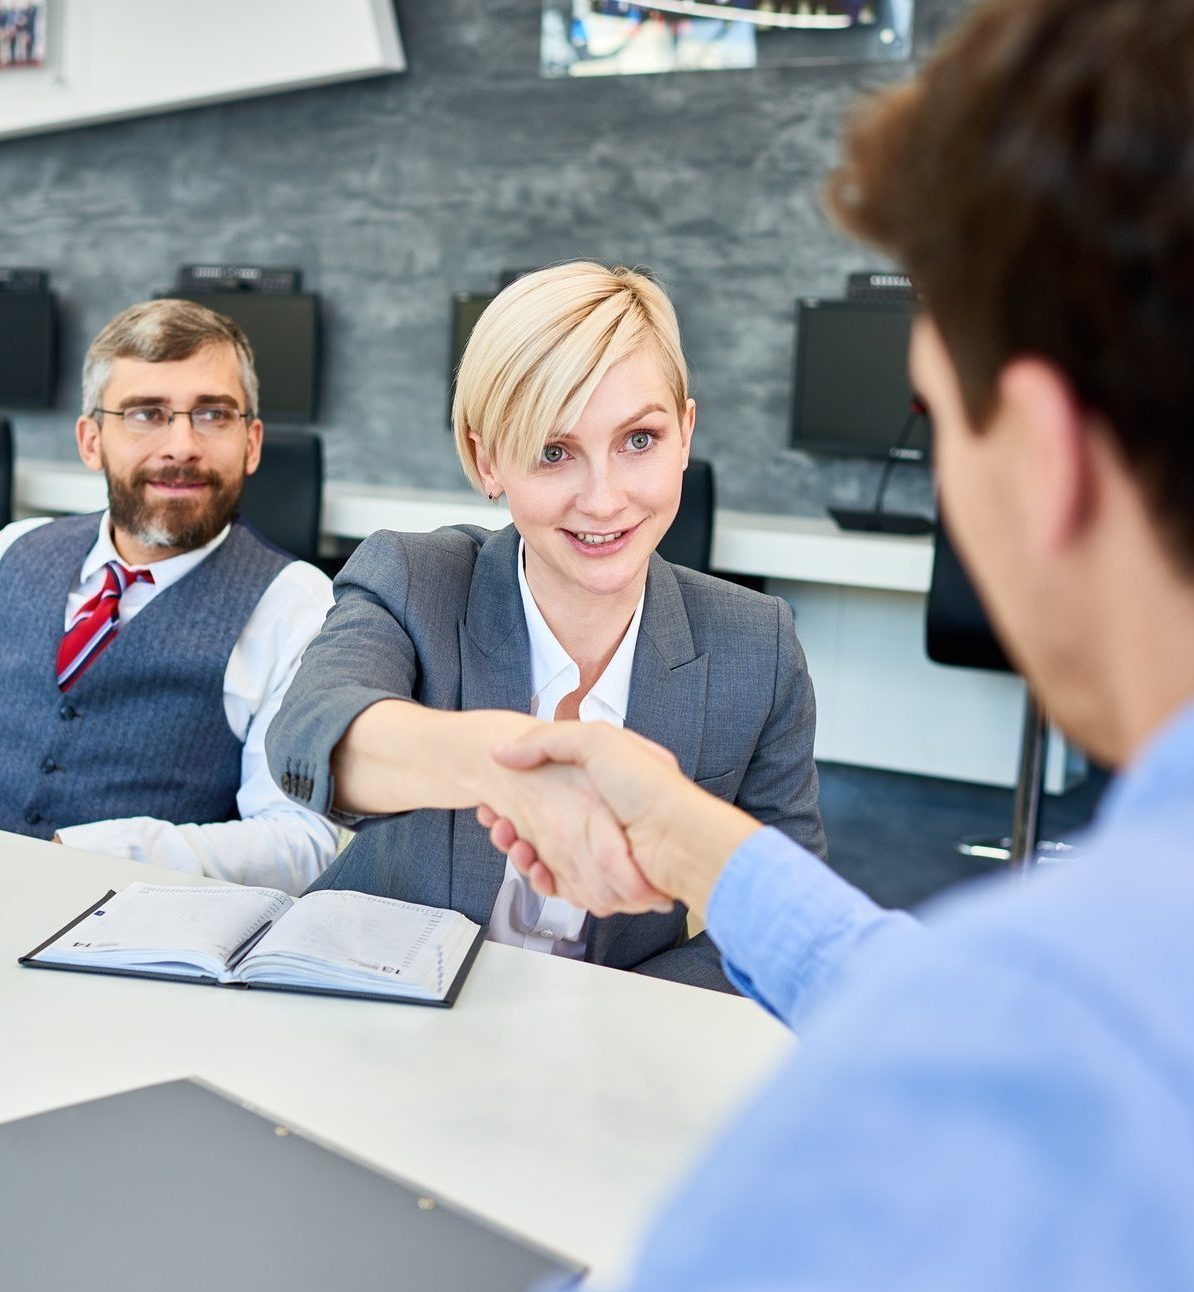 Image of hiring manager congratulating an interviewee